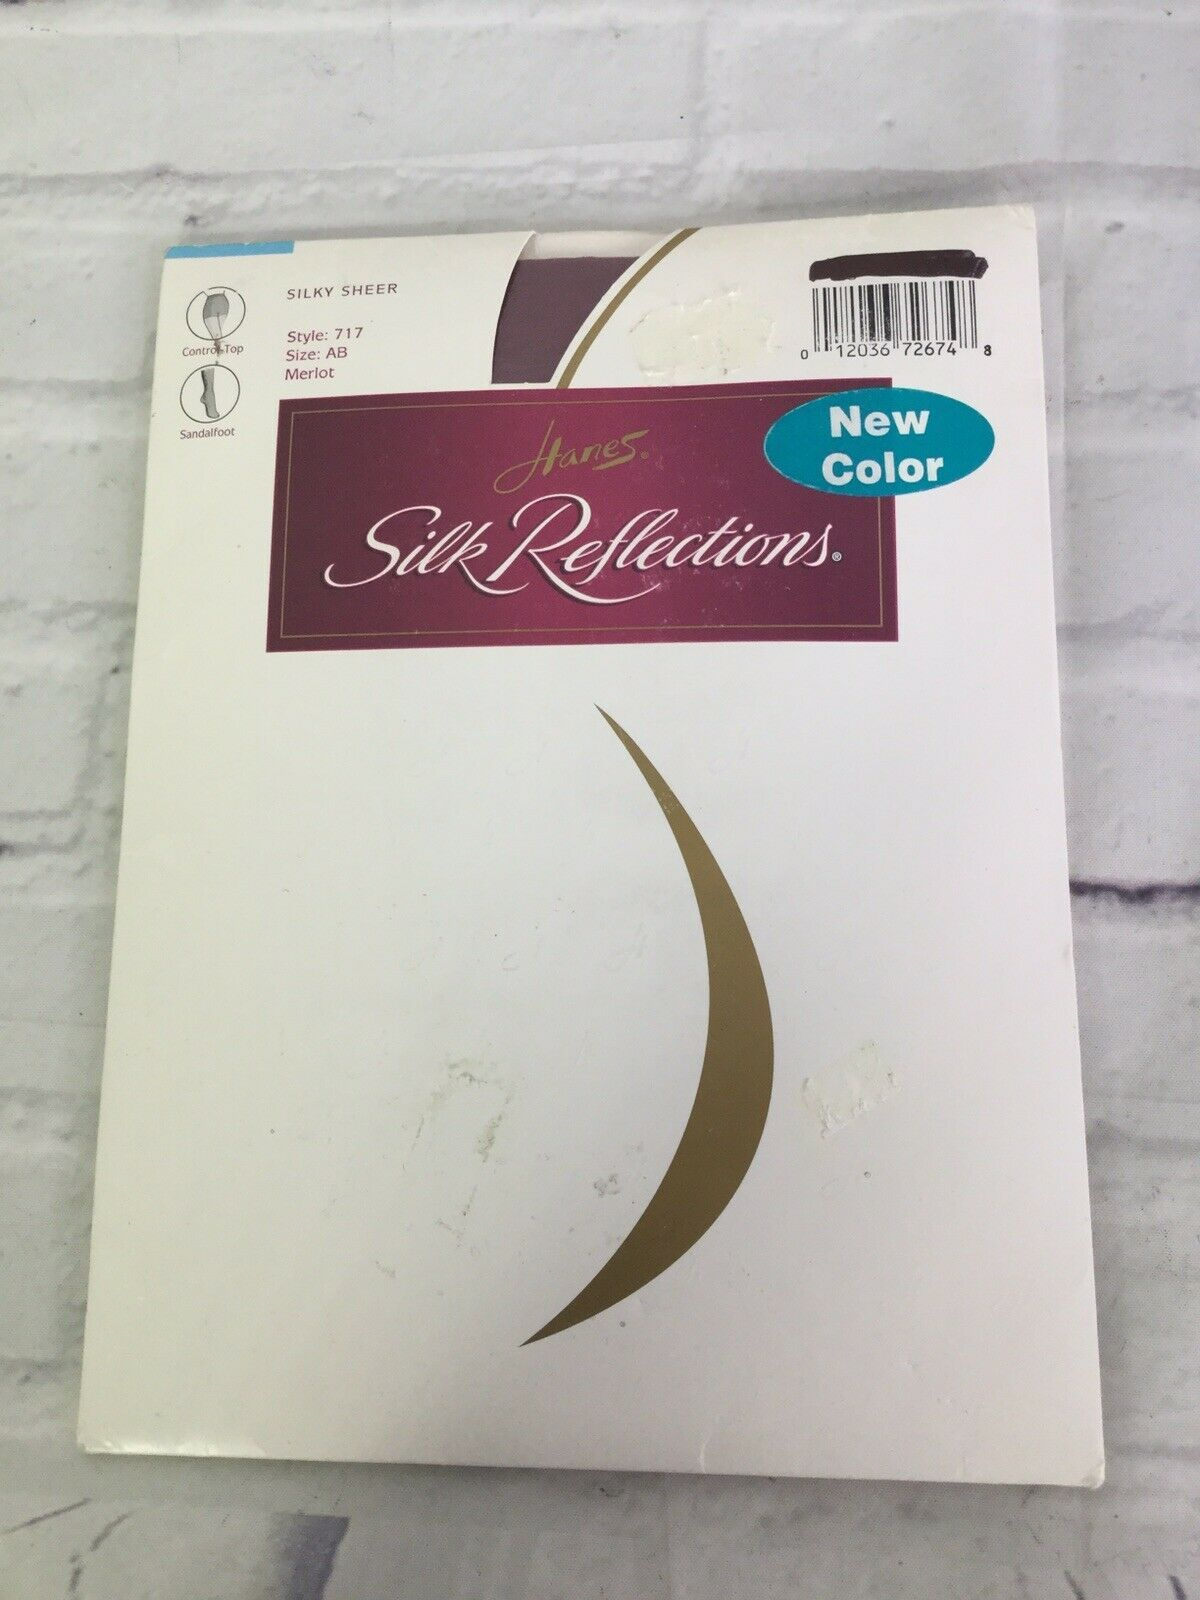 Primary image for Hanes Silk Reflections 717 Silky Sheer Pantyhose Control Top Merlot Red Size AB